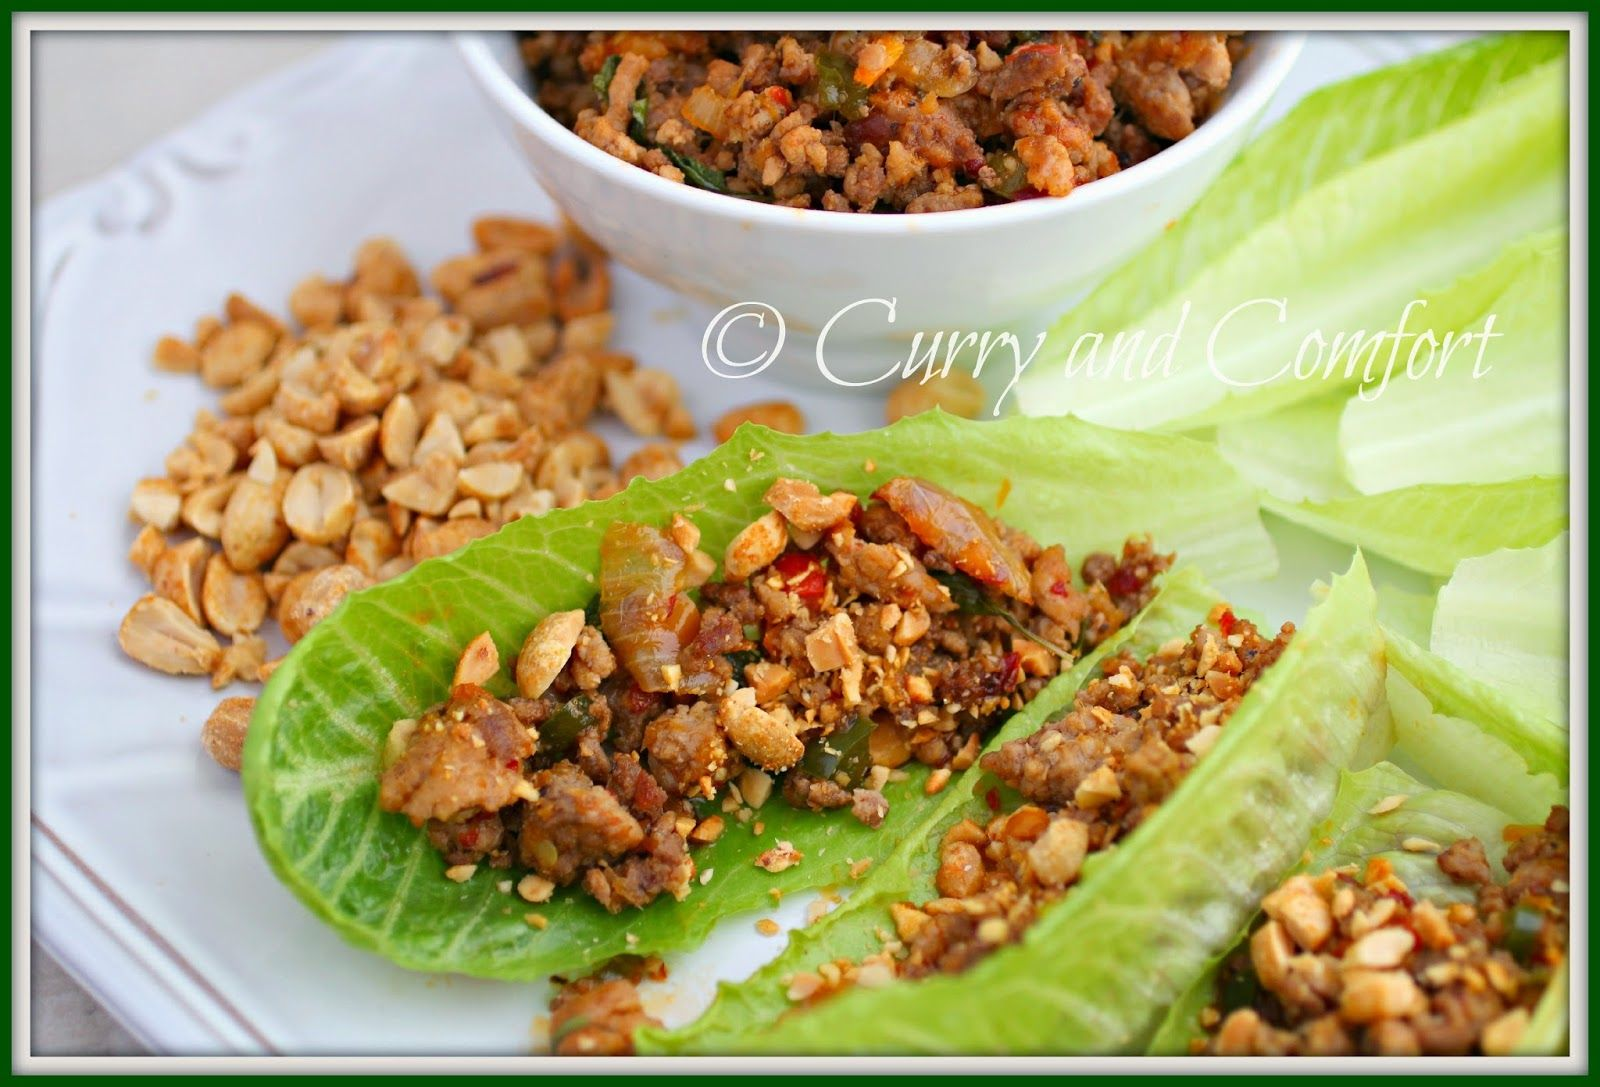 Curry and Comfort: Thai Lettuce Wraps